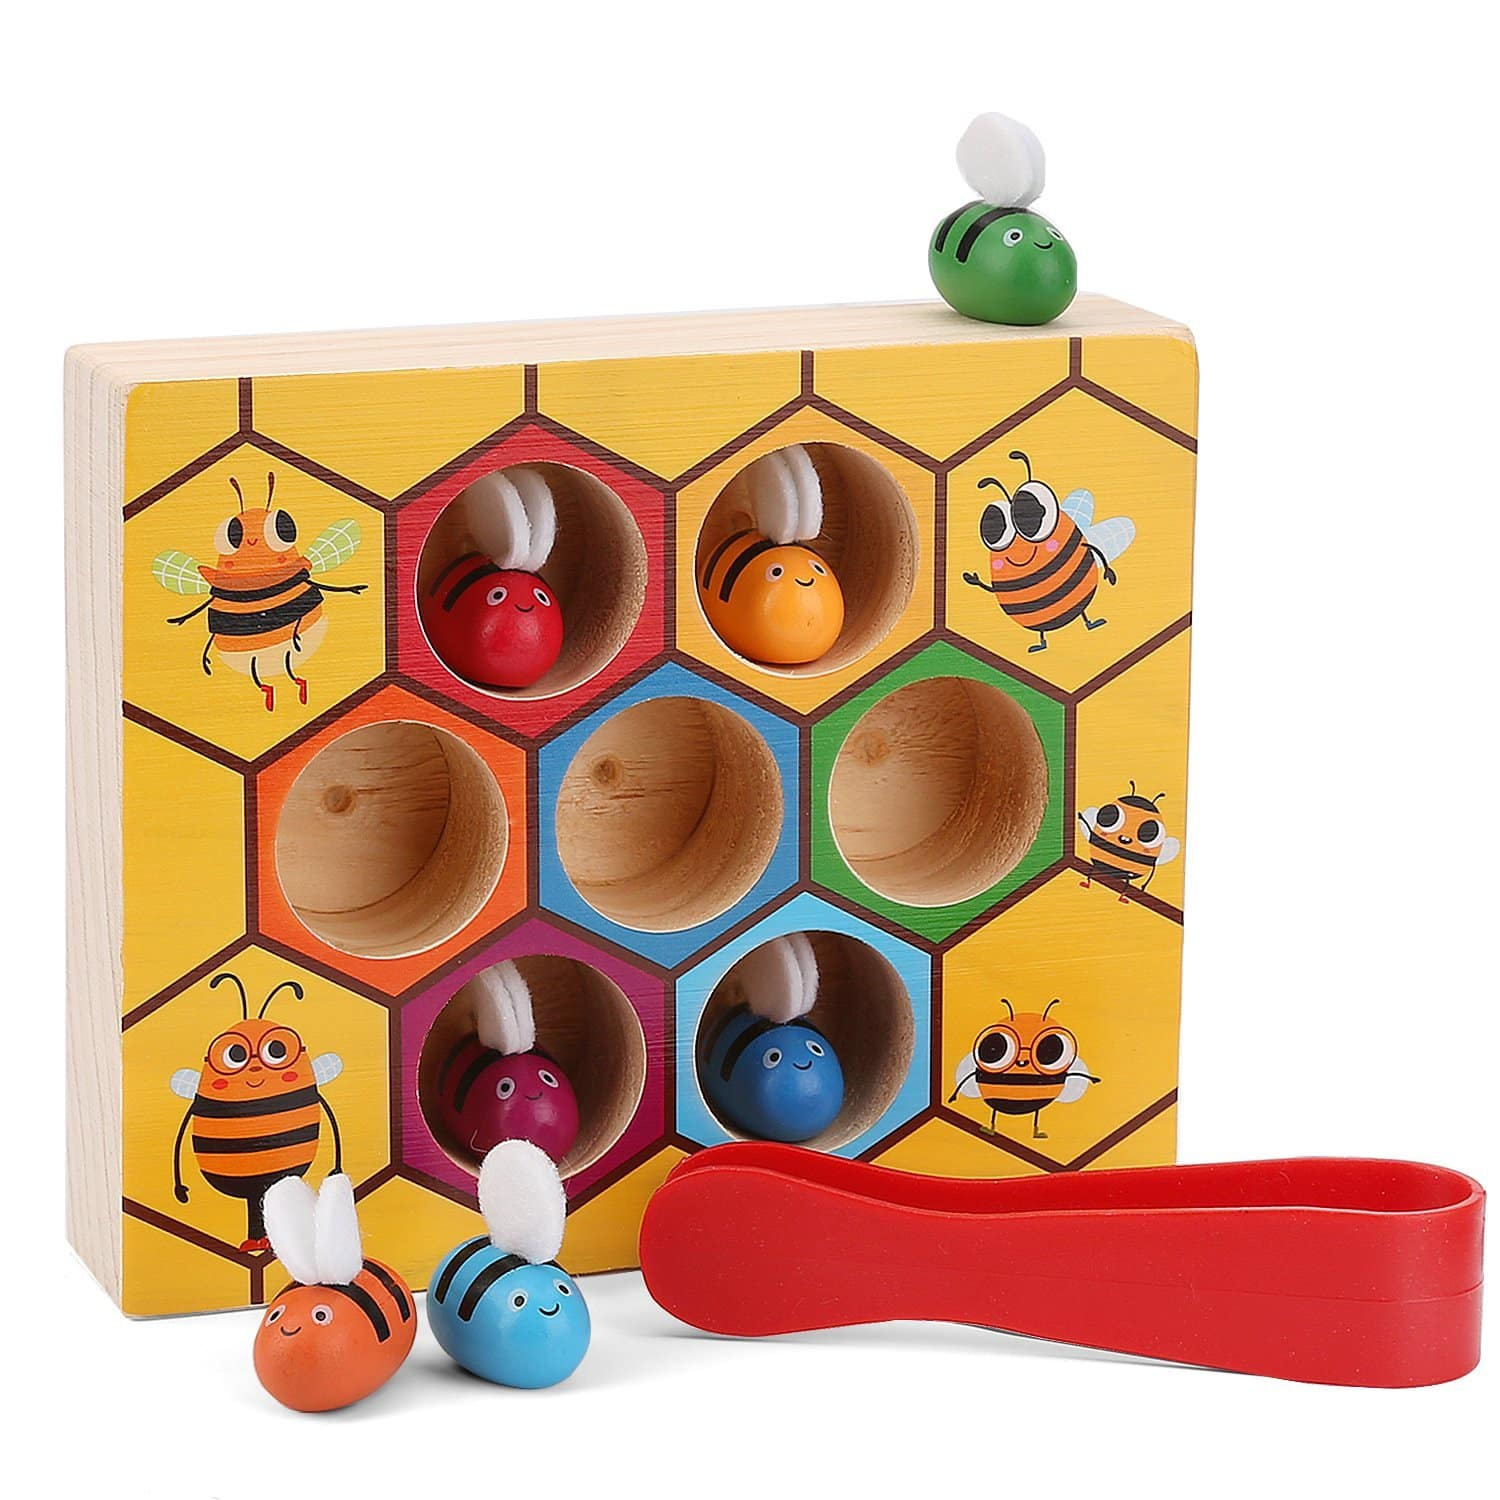 Toddler Bee Hive Preschool Wooden Toys for $9.99 @Amazon